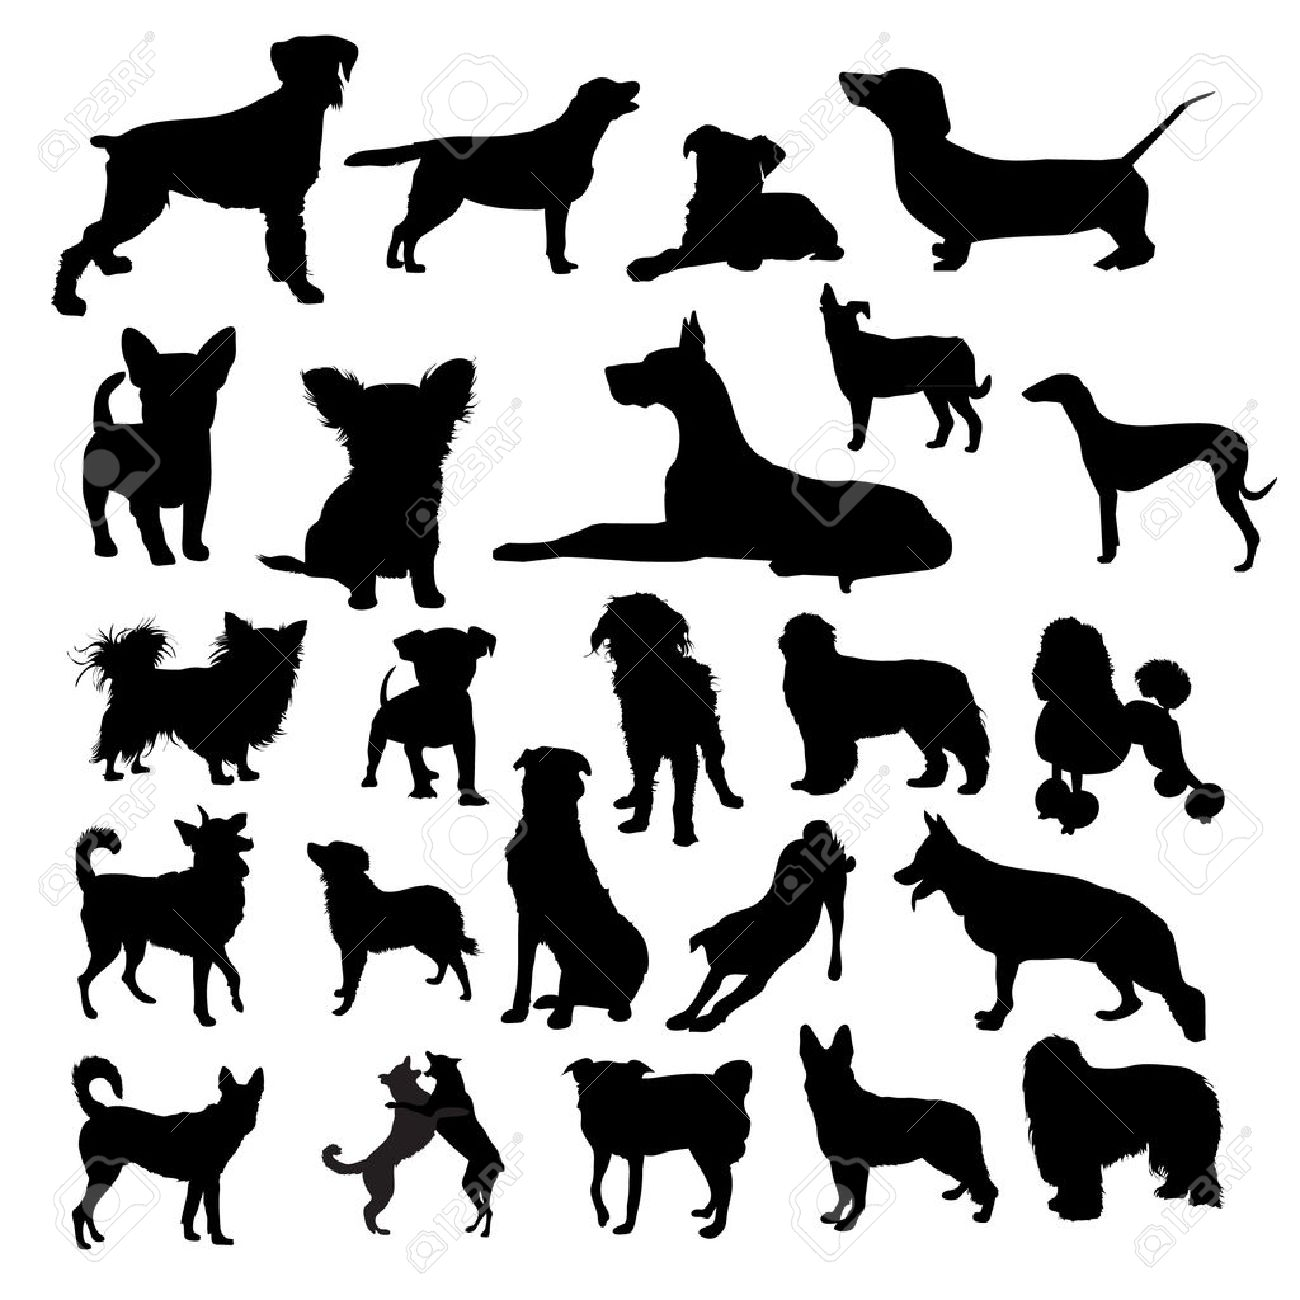 greyhound stock photos royalty free greyhound images and pictures